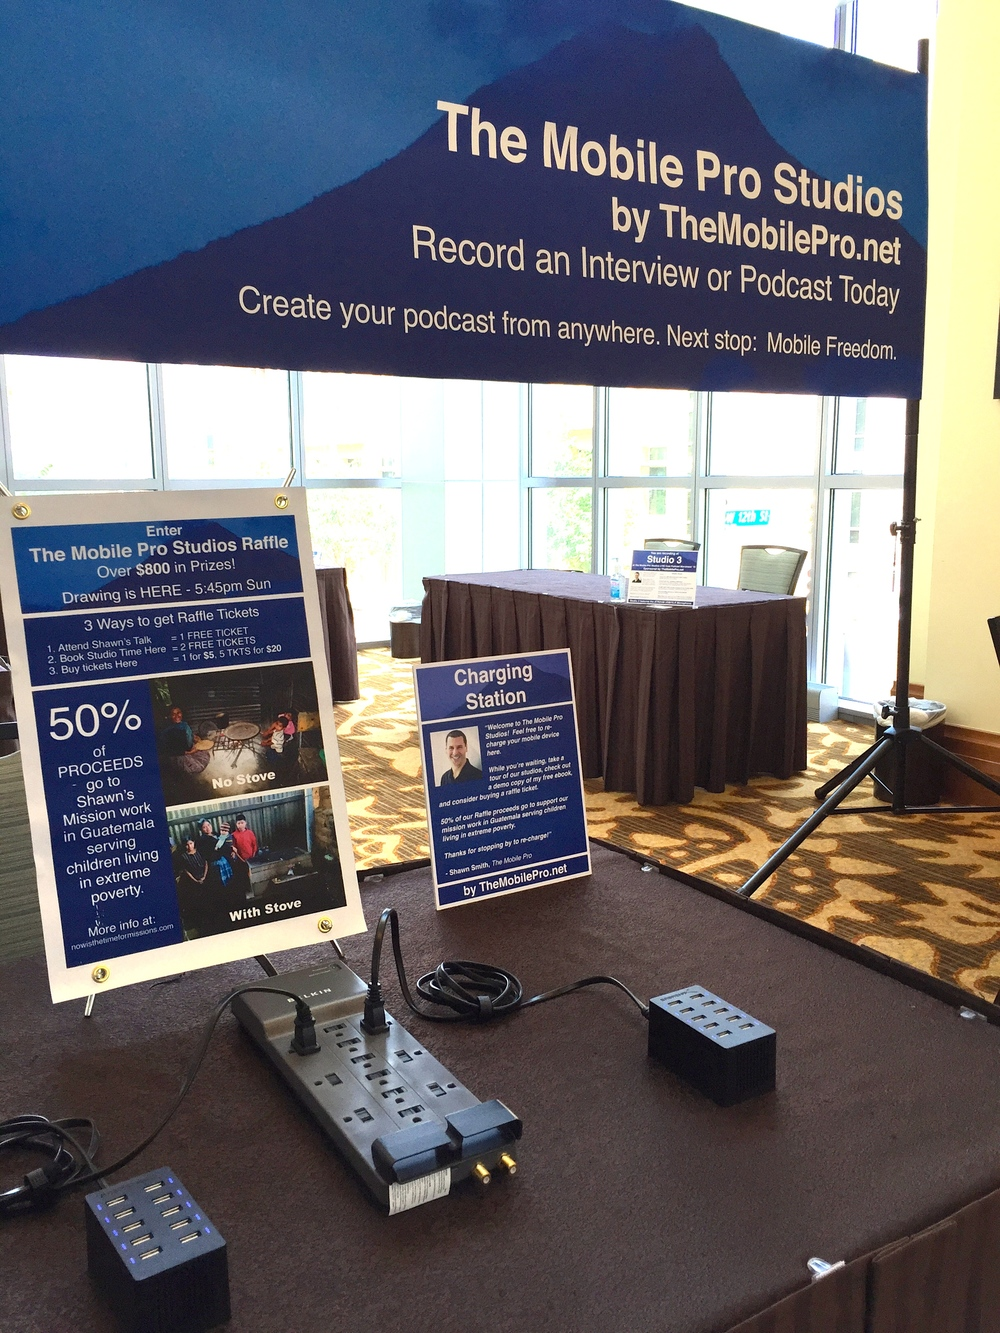 The Mobile Pro Studios - Charging Station & Raffle